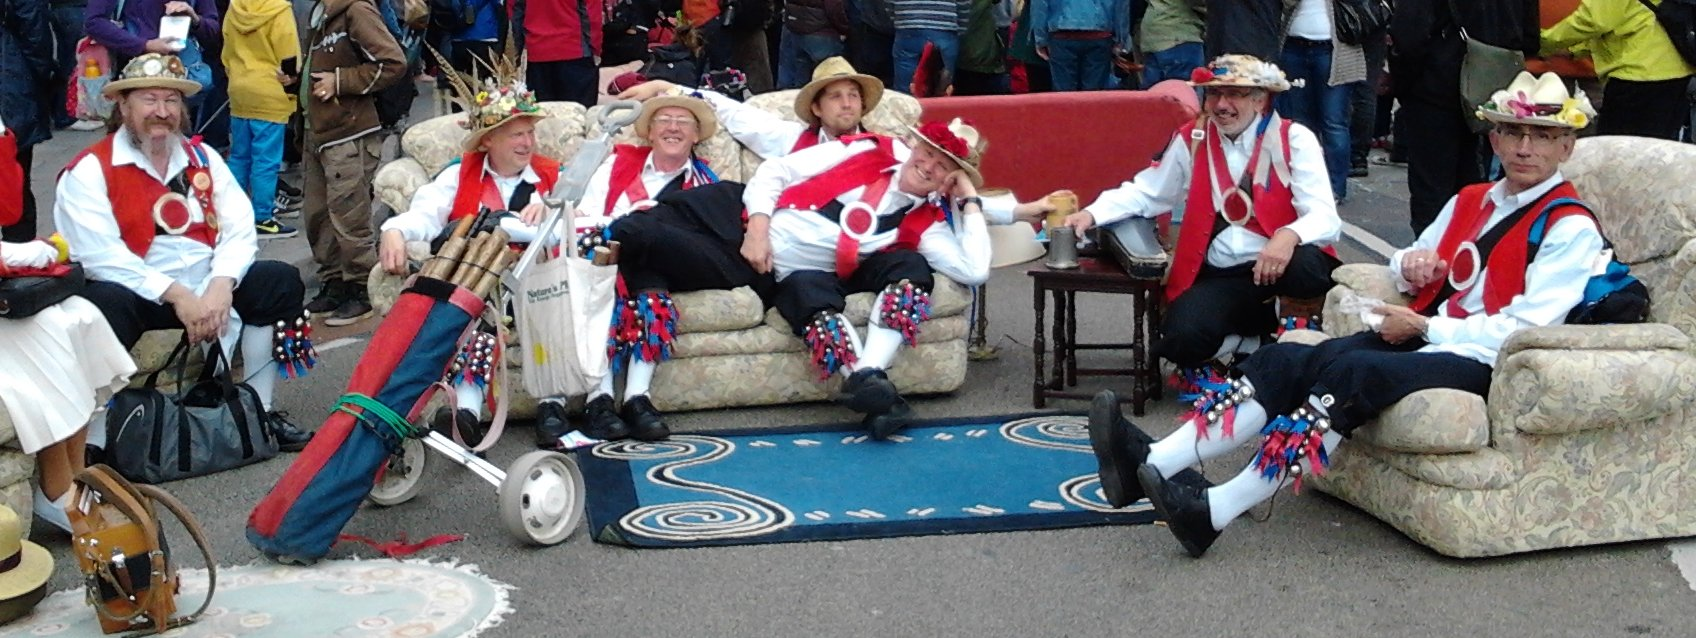 Bristol Morris Men sitting on a sofa